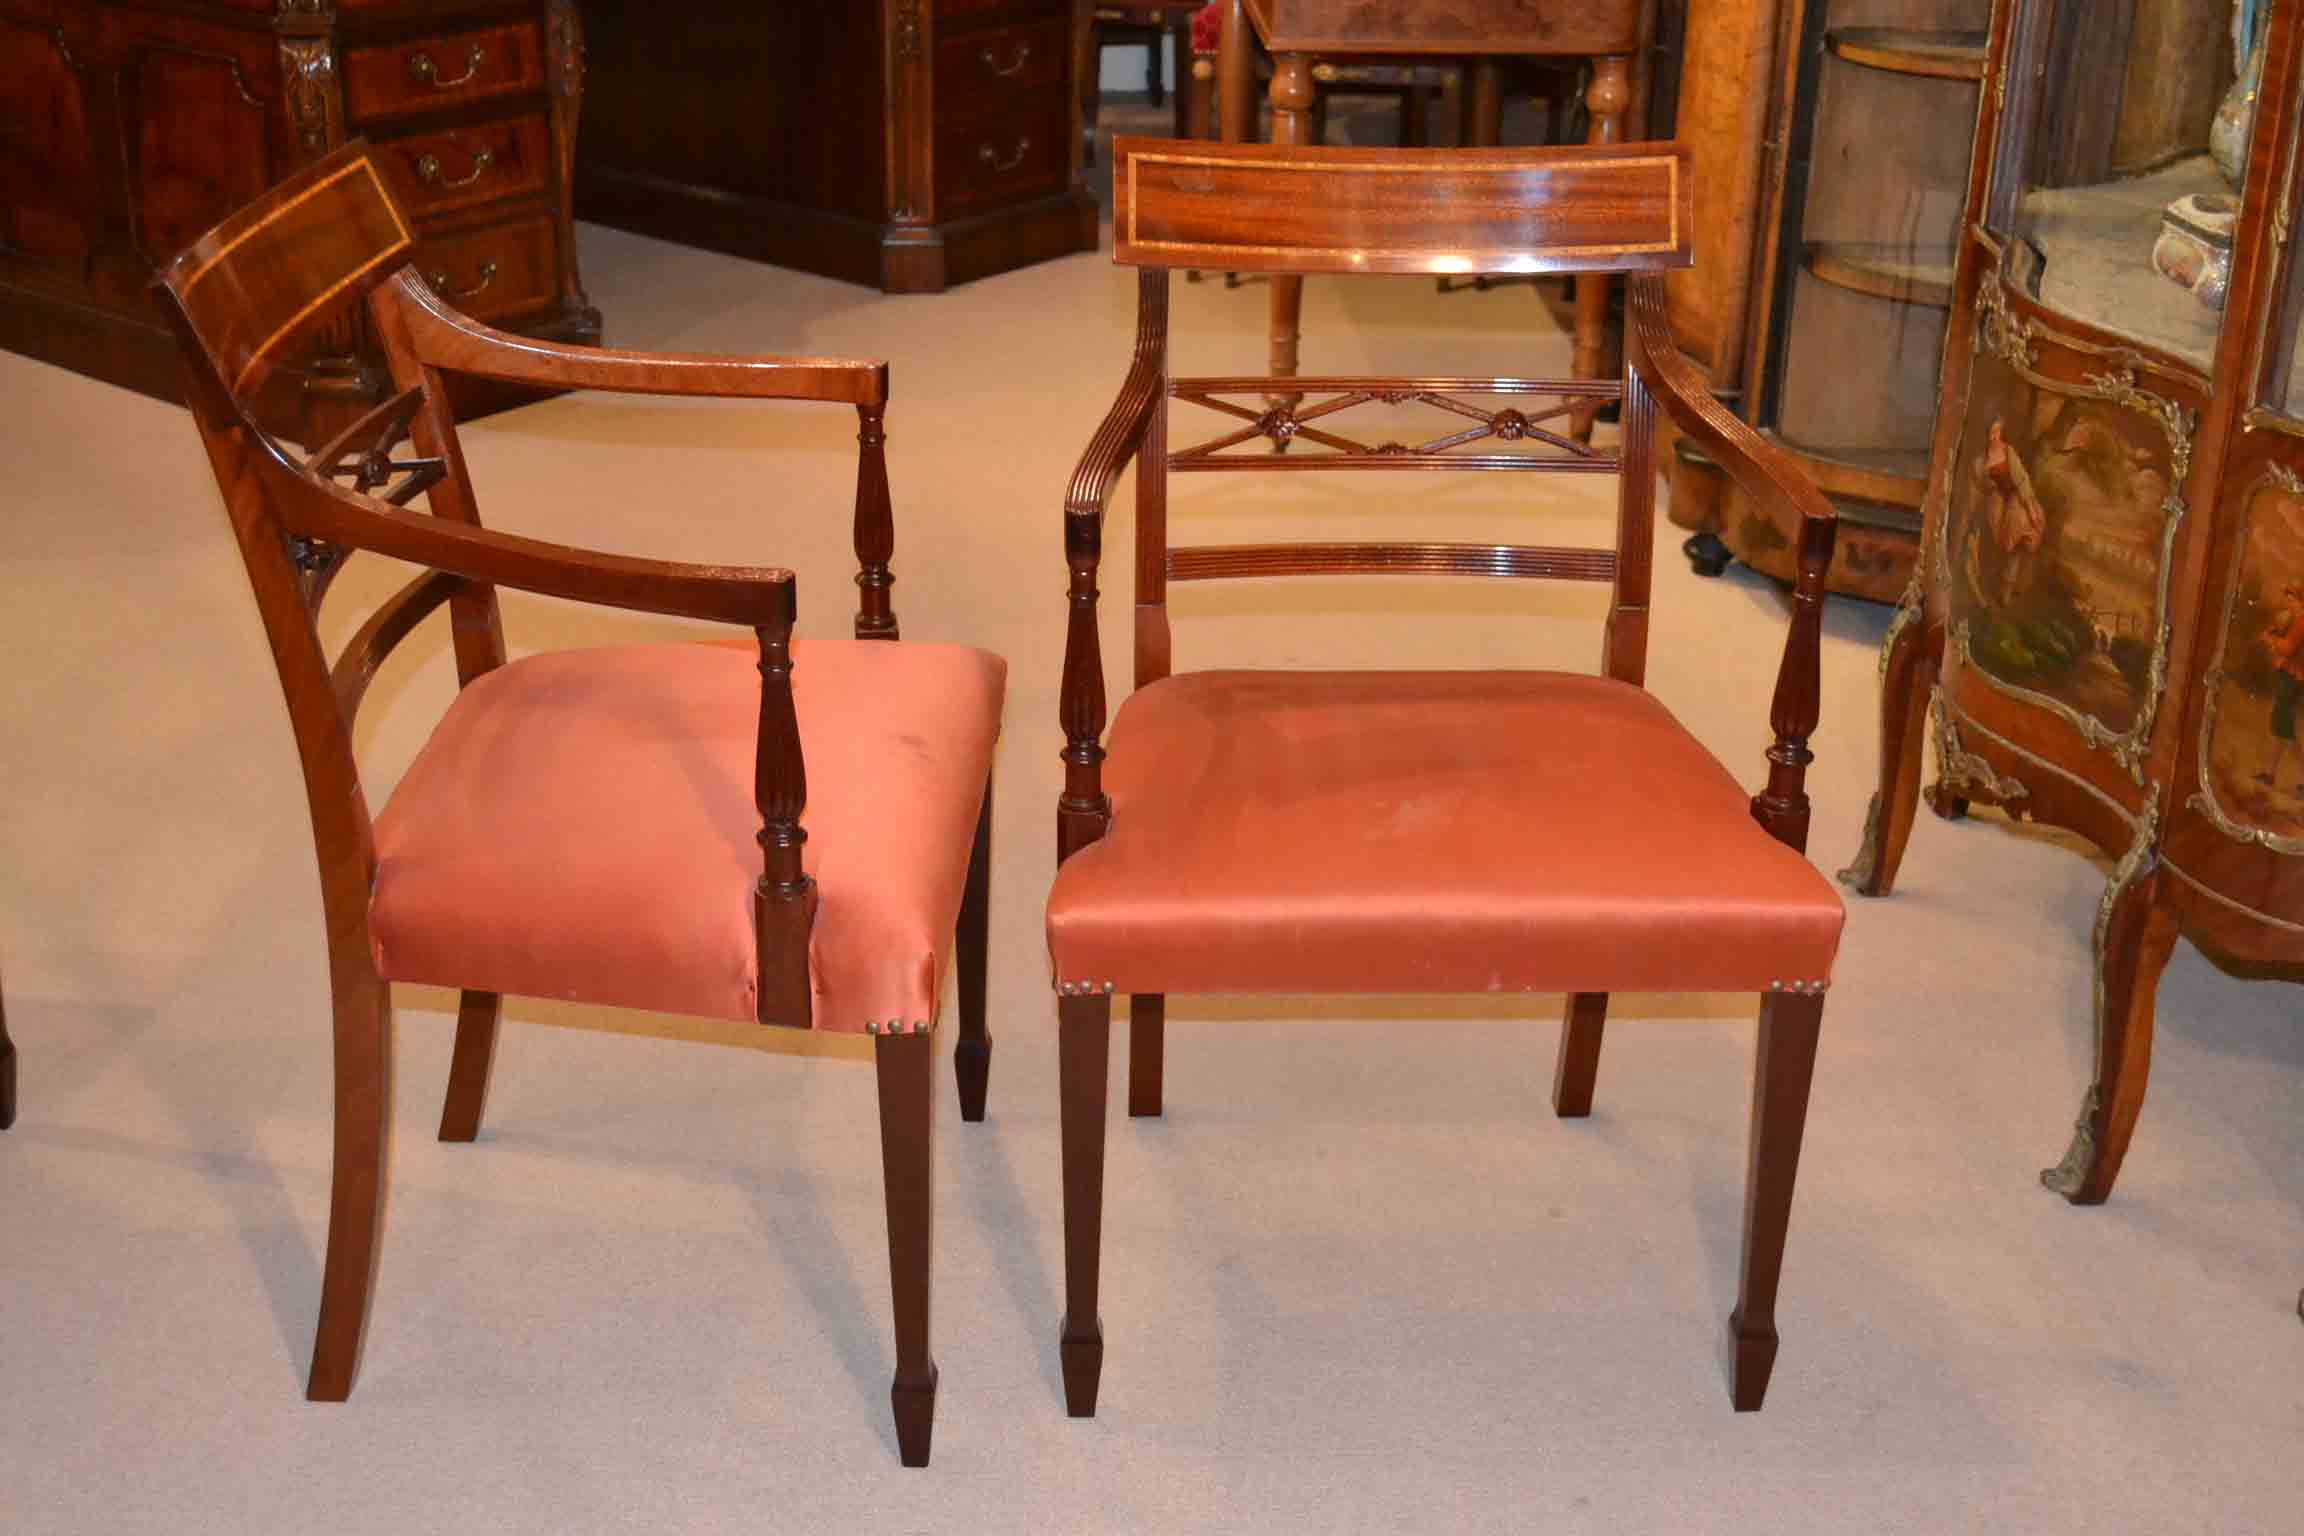 regent antiques dining tables and chairs table and chair sets english regency dining table. Black Bedroom Furniture Sets. Home Design Ideas